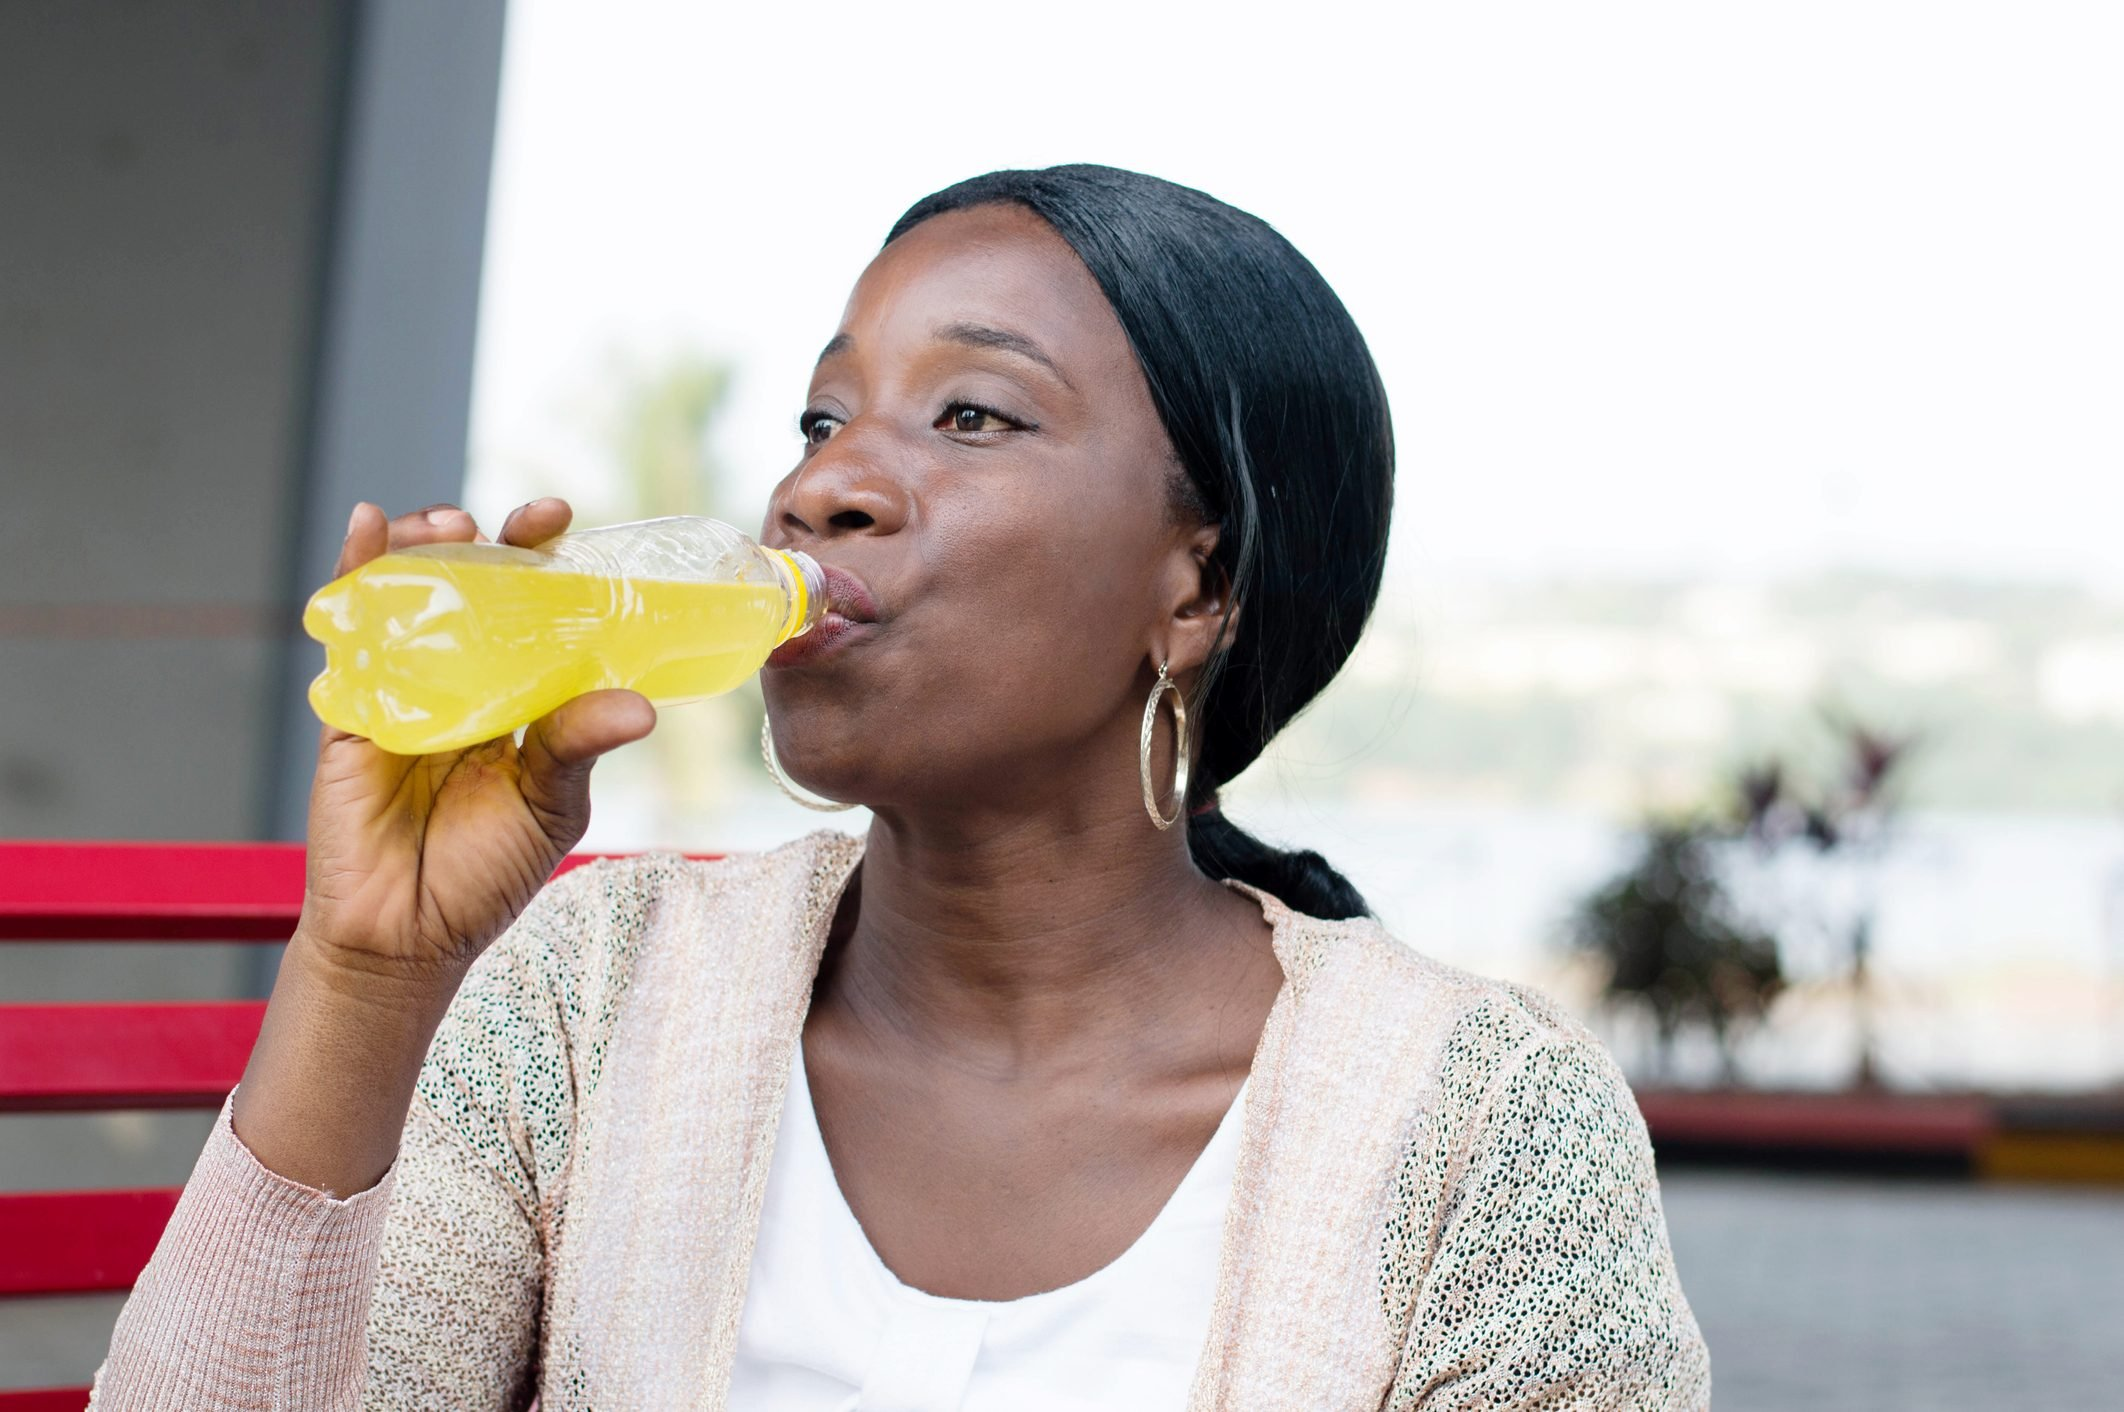 Woman drinking a soda at the bottle